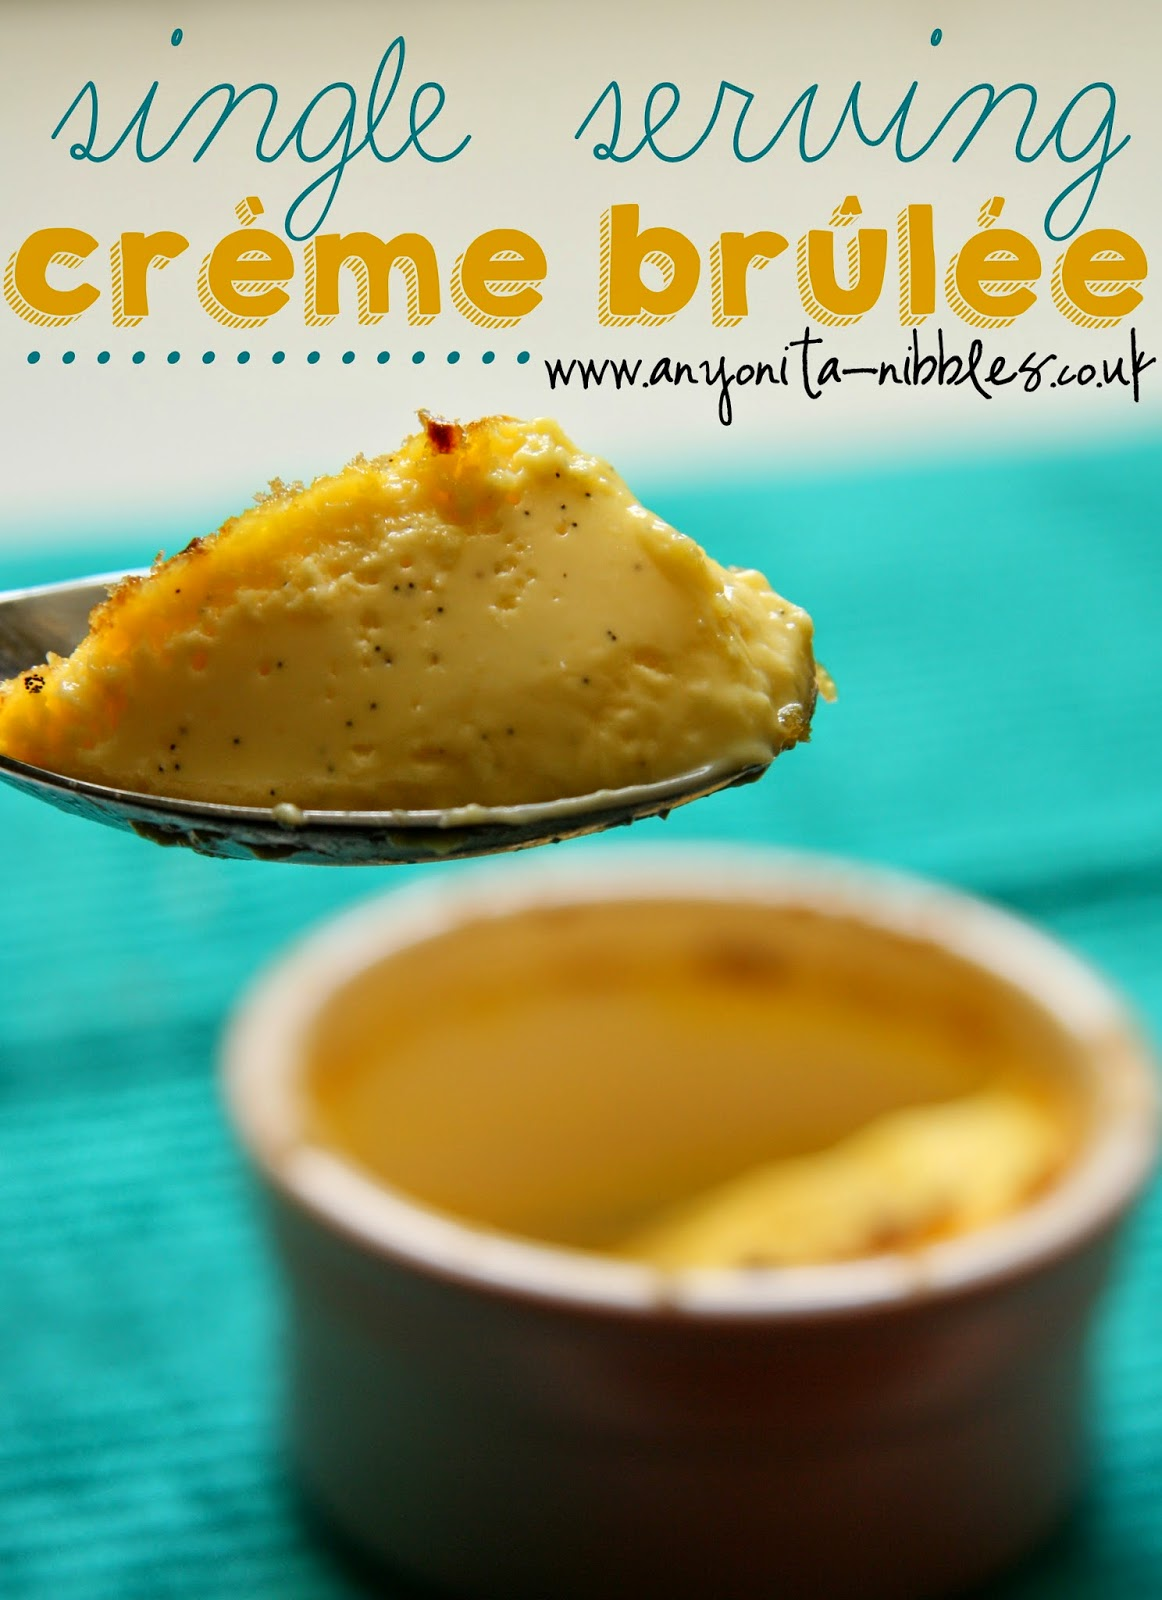 A spoonful of golden and indulgent #glutenfree crème brûlée from Anyonita Nibbles